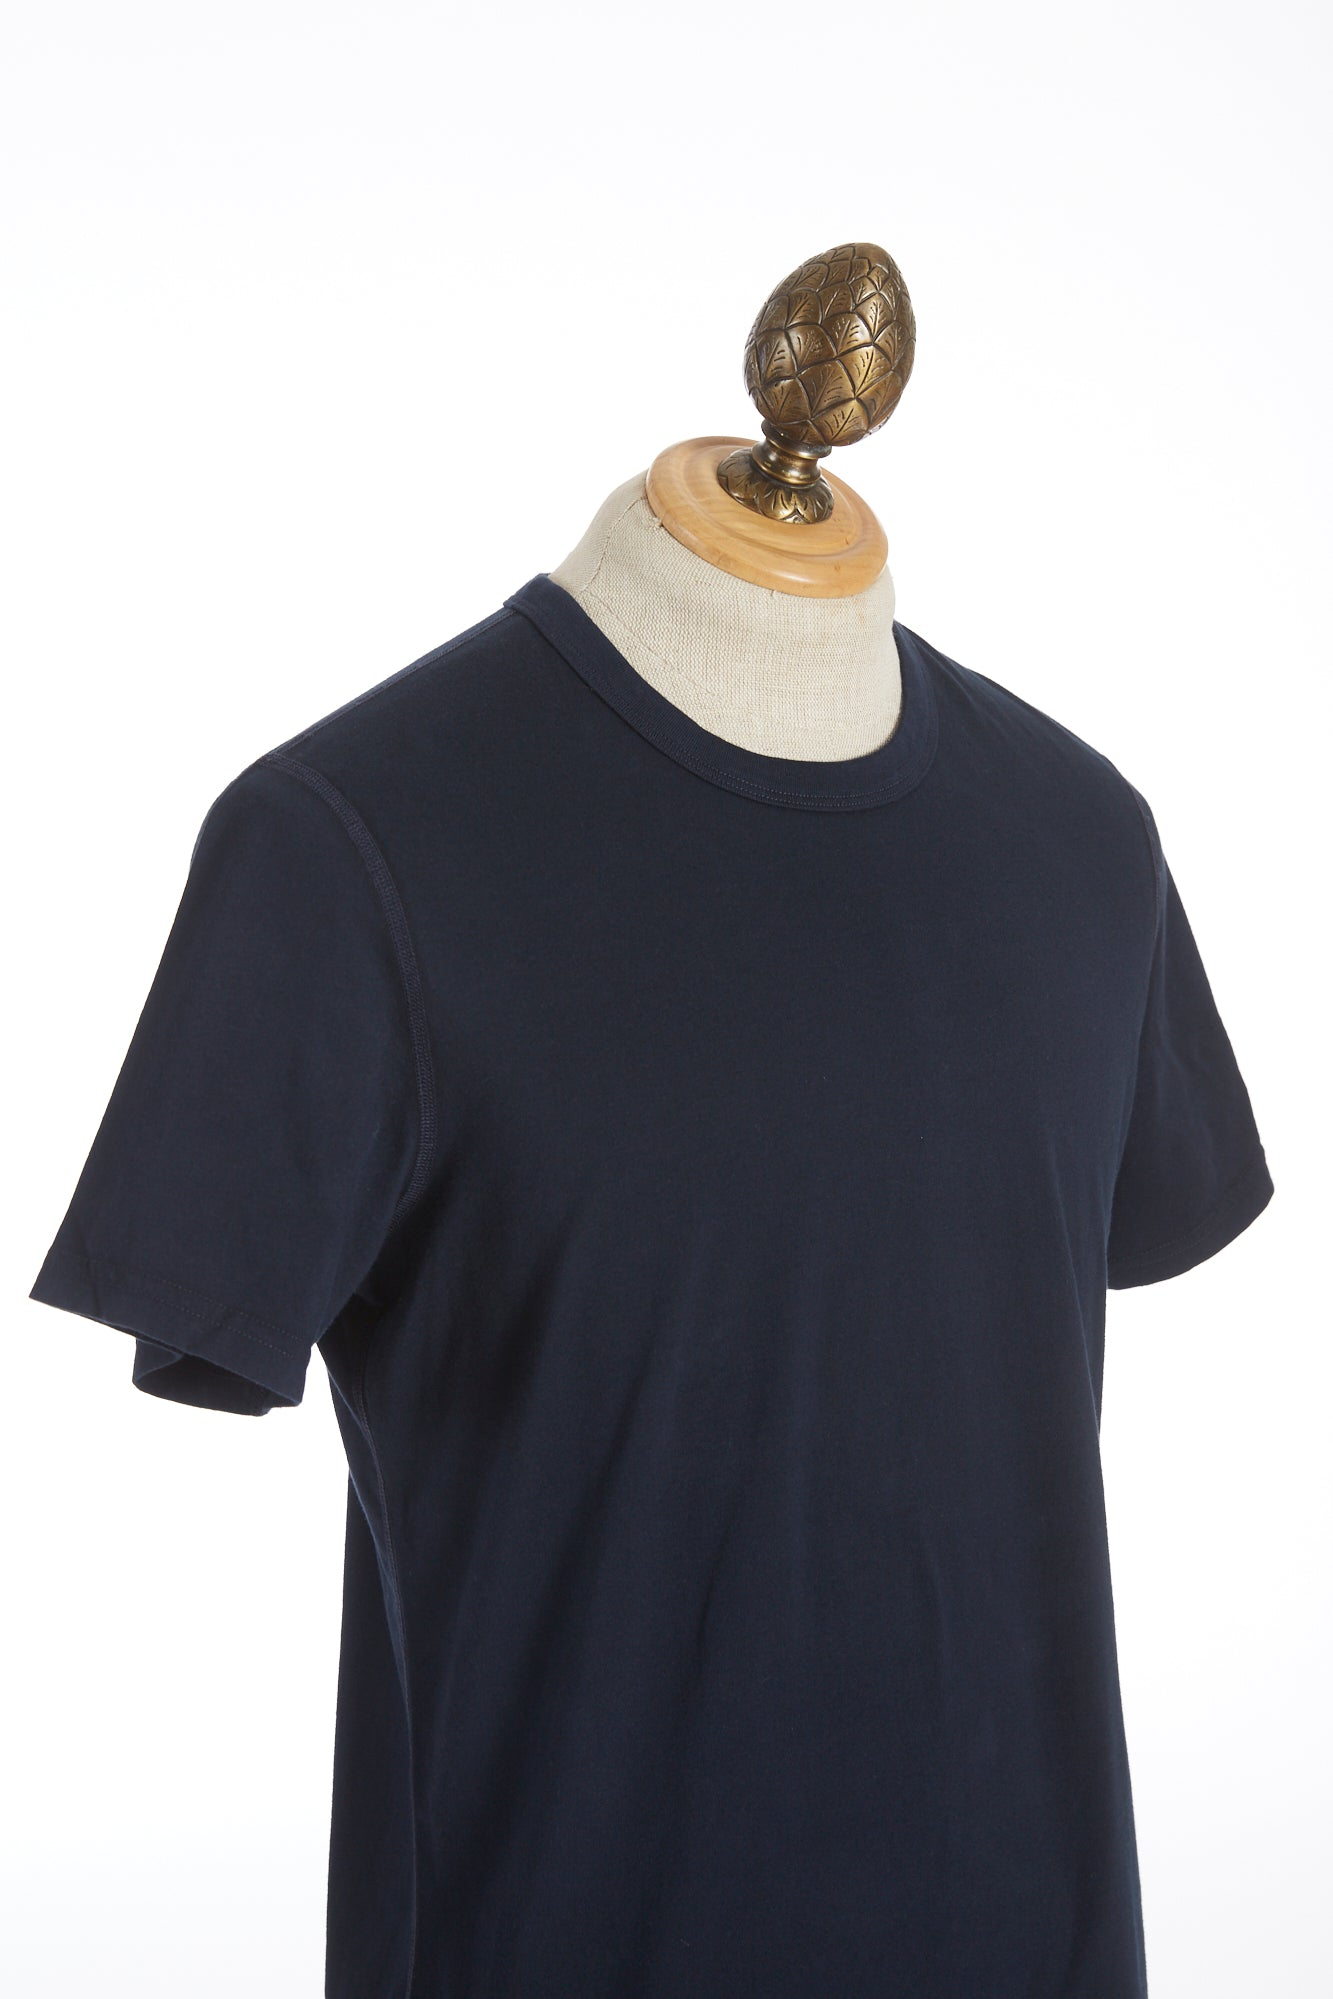 Reigning Champ Navy Blue Cotton Jersey T-Shirt